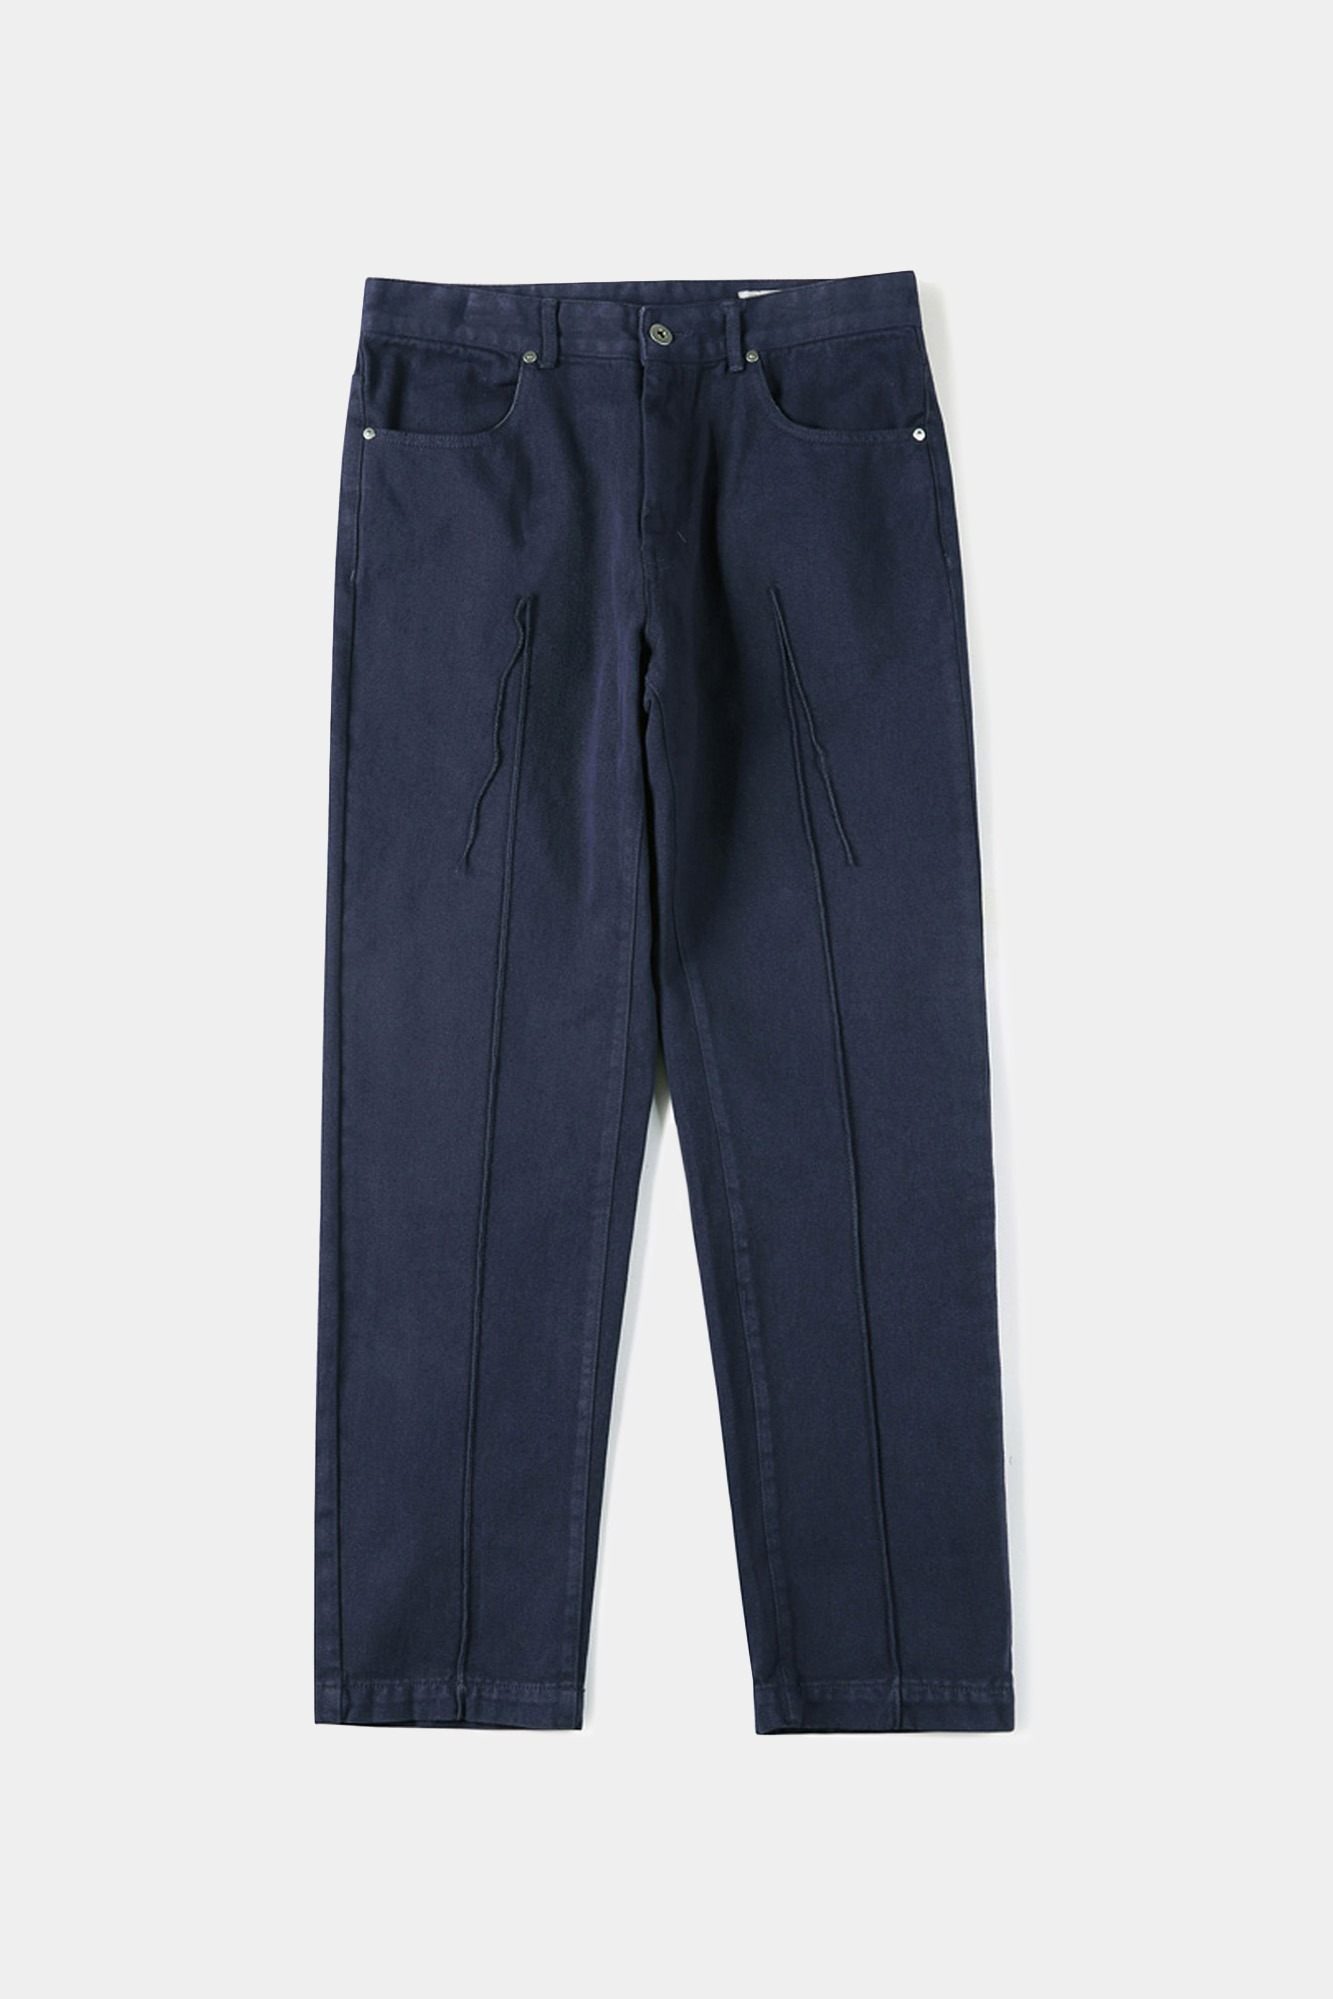 "SHIRTER Garment Dyed Tapered Original Denim Pants ""Puple Navy"""